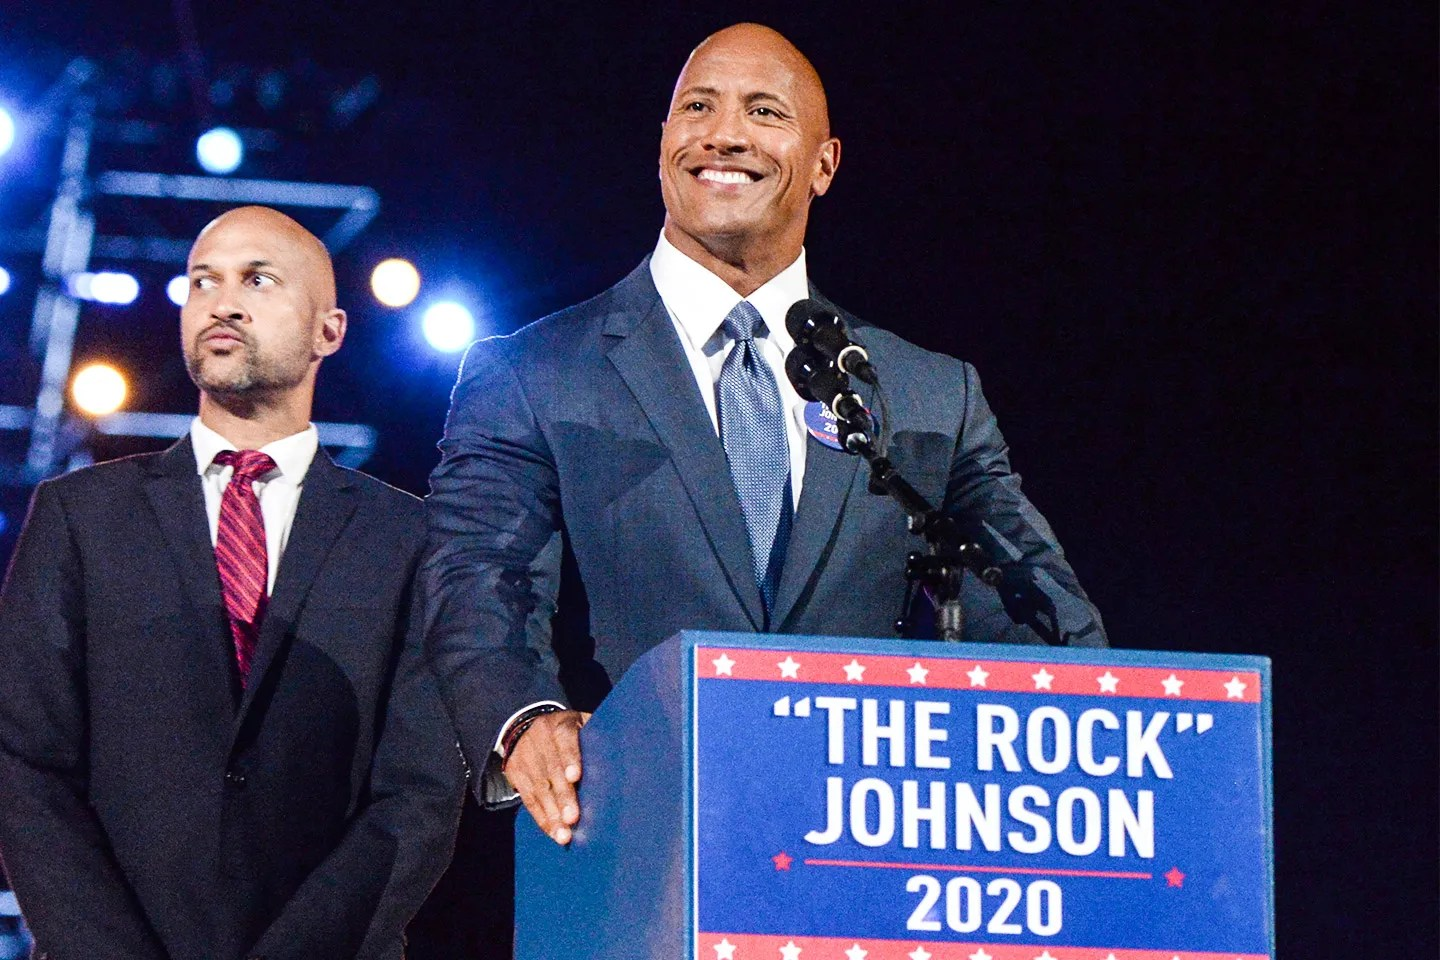 The Rock is Running For President The Rock is Running For President and Satire is Dead